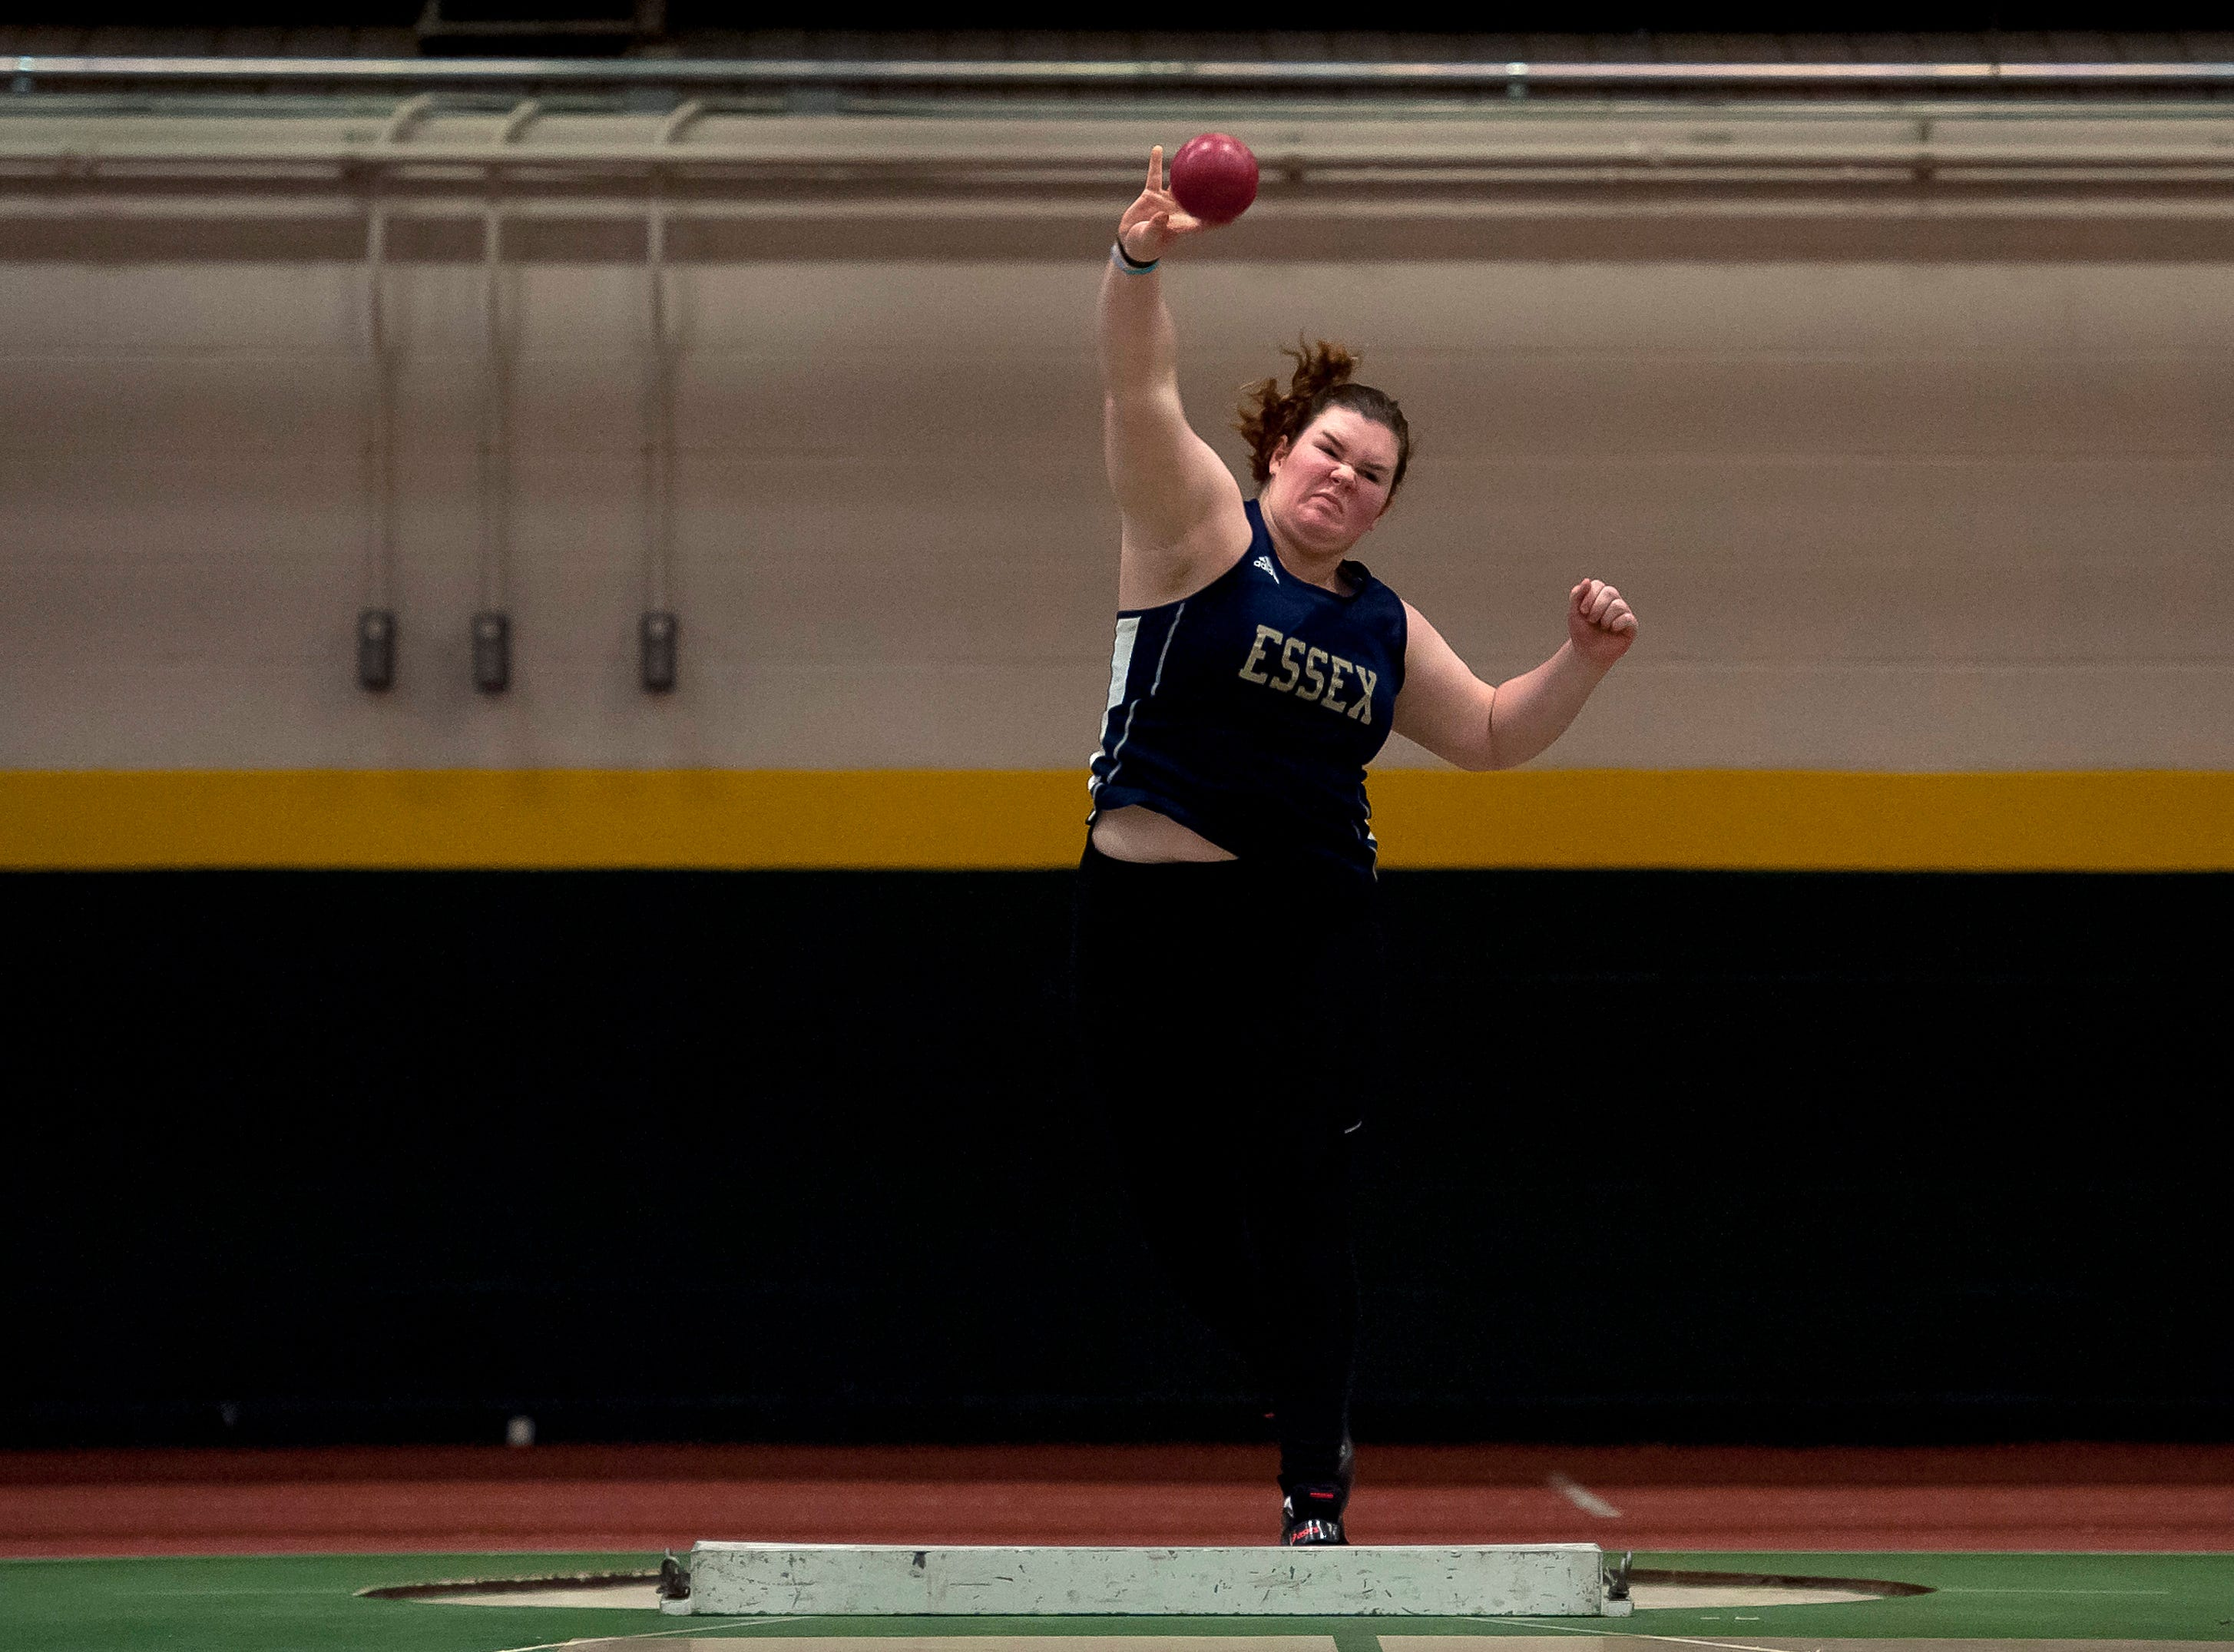 Essex's Maria Campo lets fly with the shot put at the high school indoor track state championships at the University of Vermont on Saturday.